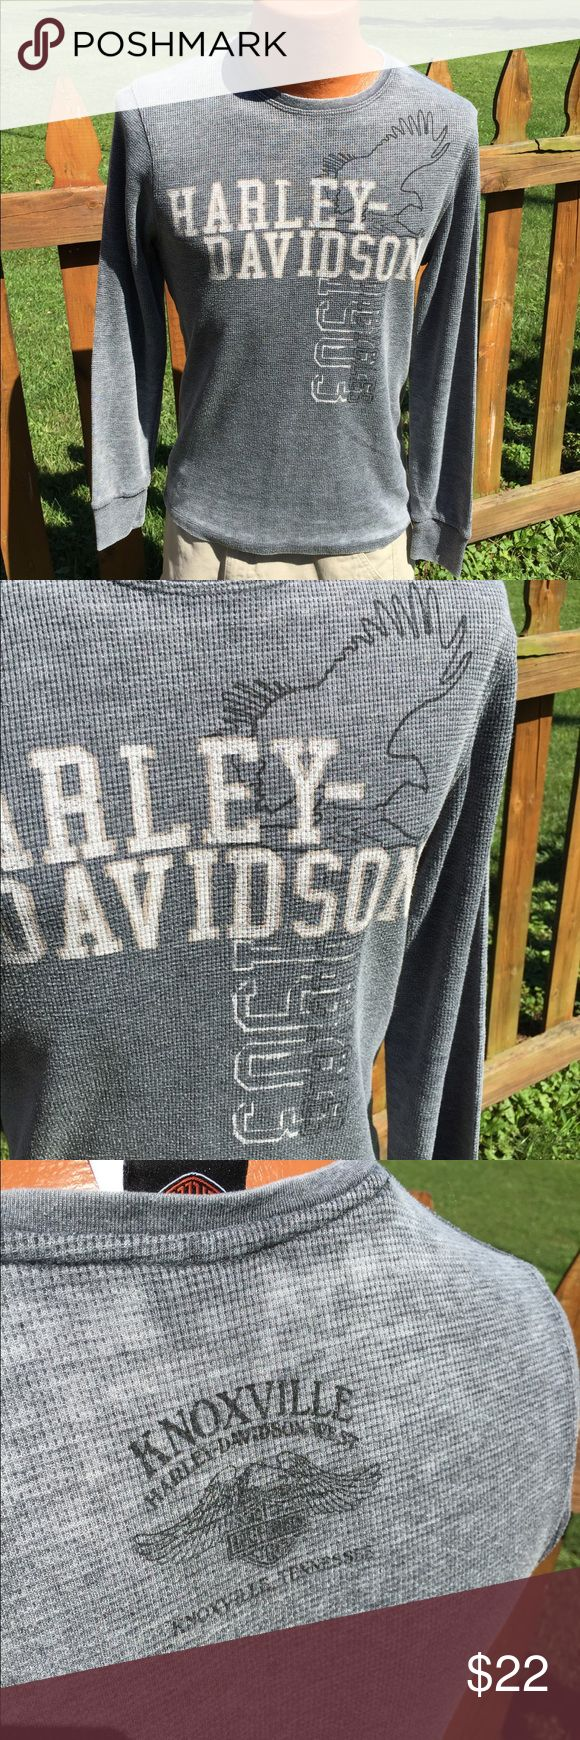 Harley Davidson Mens Thermal Shirt Size Medium Size medium. Super gently preowned. Be sure to view the other items in our closet. We offer  women's, Mens and kids items in a variety of sizes. Bundle and save!! We love reasonable offers!! Thank you for viewing our item!! Harley-Davidson Shirts